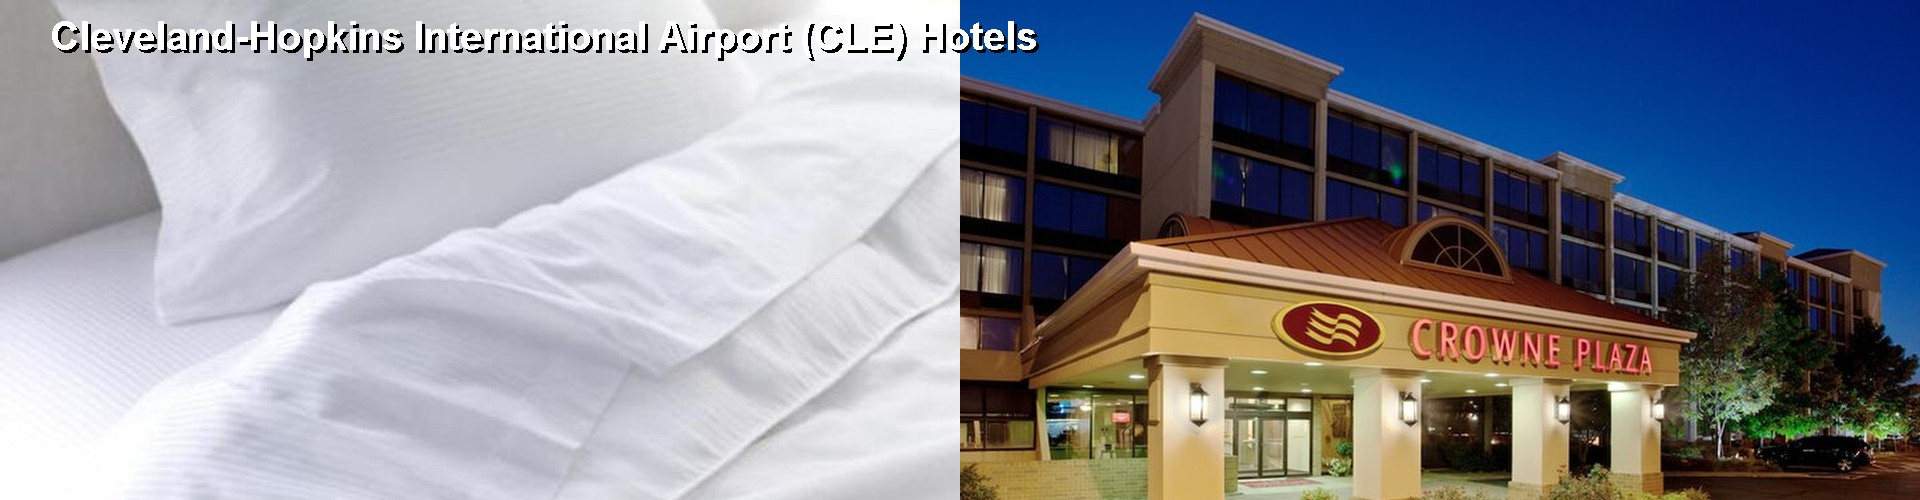 $40+ Hotels Near Cleveland Hopkins International Airport (CLE) OH ✈